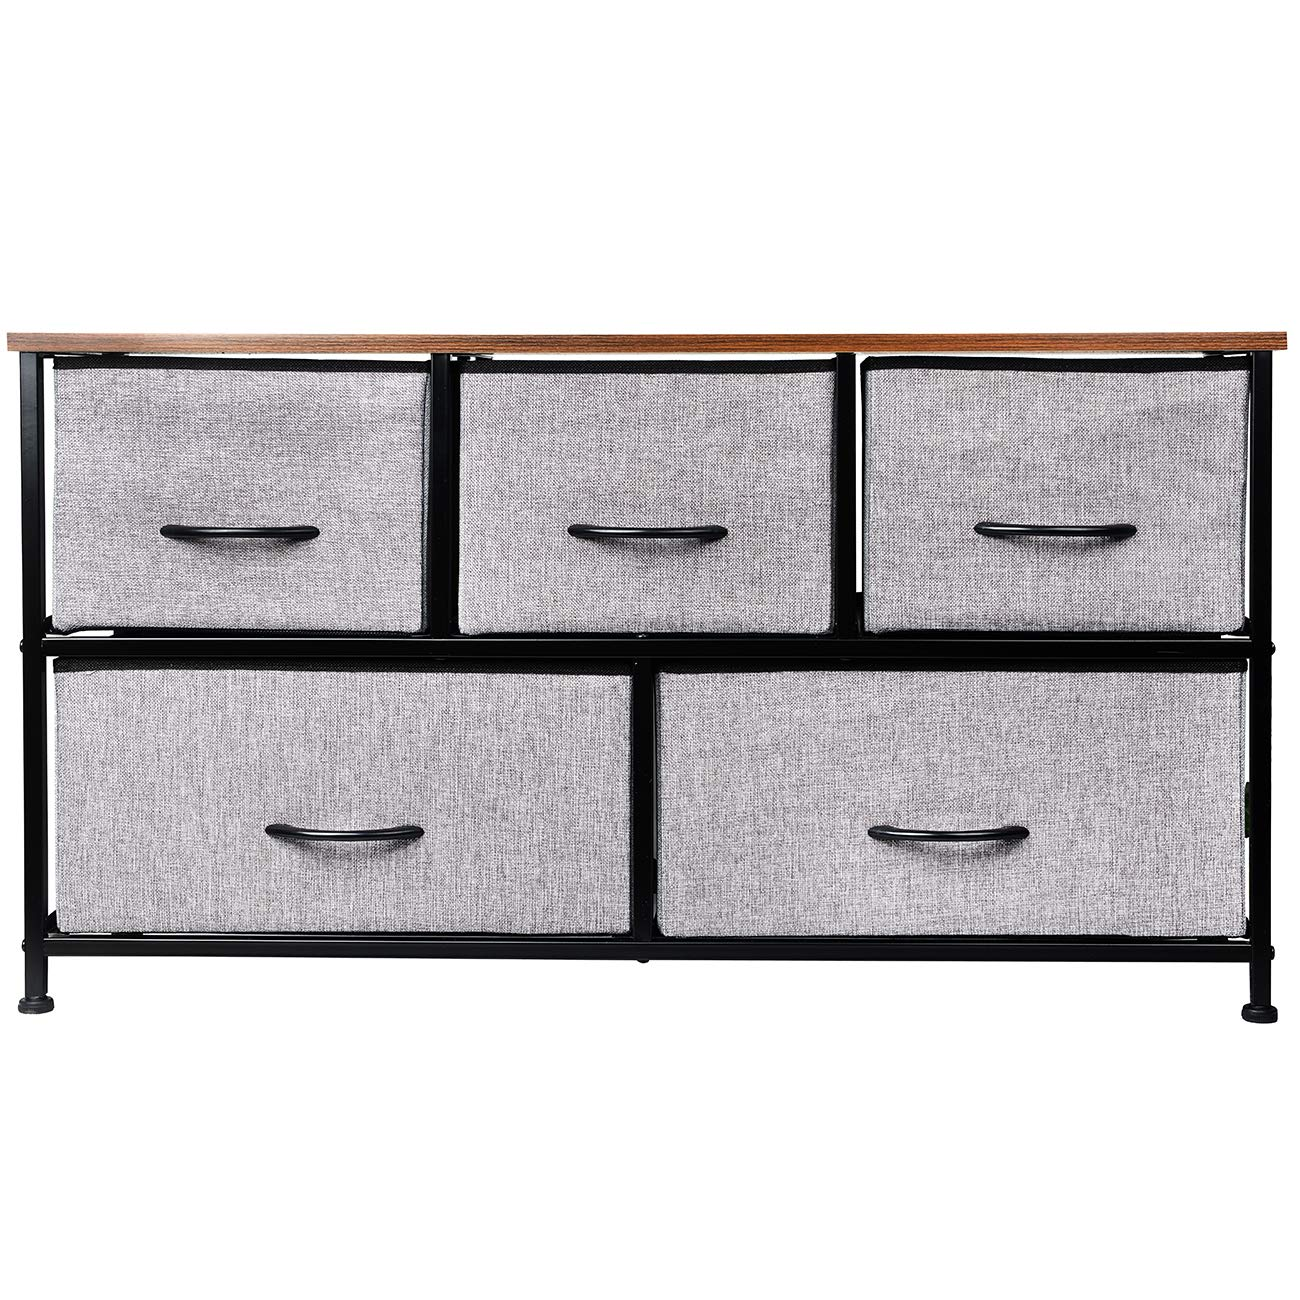 KINWELL Extra Wide Fabric Storage Organizer Drawer Dresser TV Stand with MDF Board Drawer Bottom Wooden Tabletop Sturdy Steel Frame Easy Pull Fabric Bins Organizer Unit for Bedroom Hallway-5 Drawers